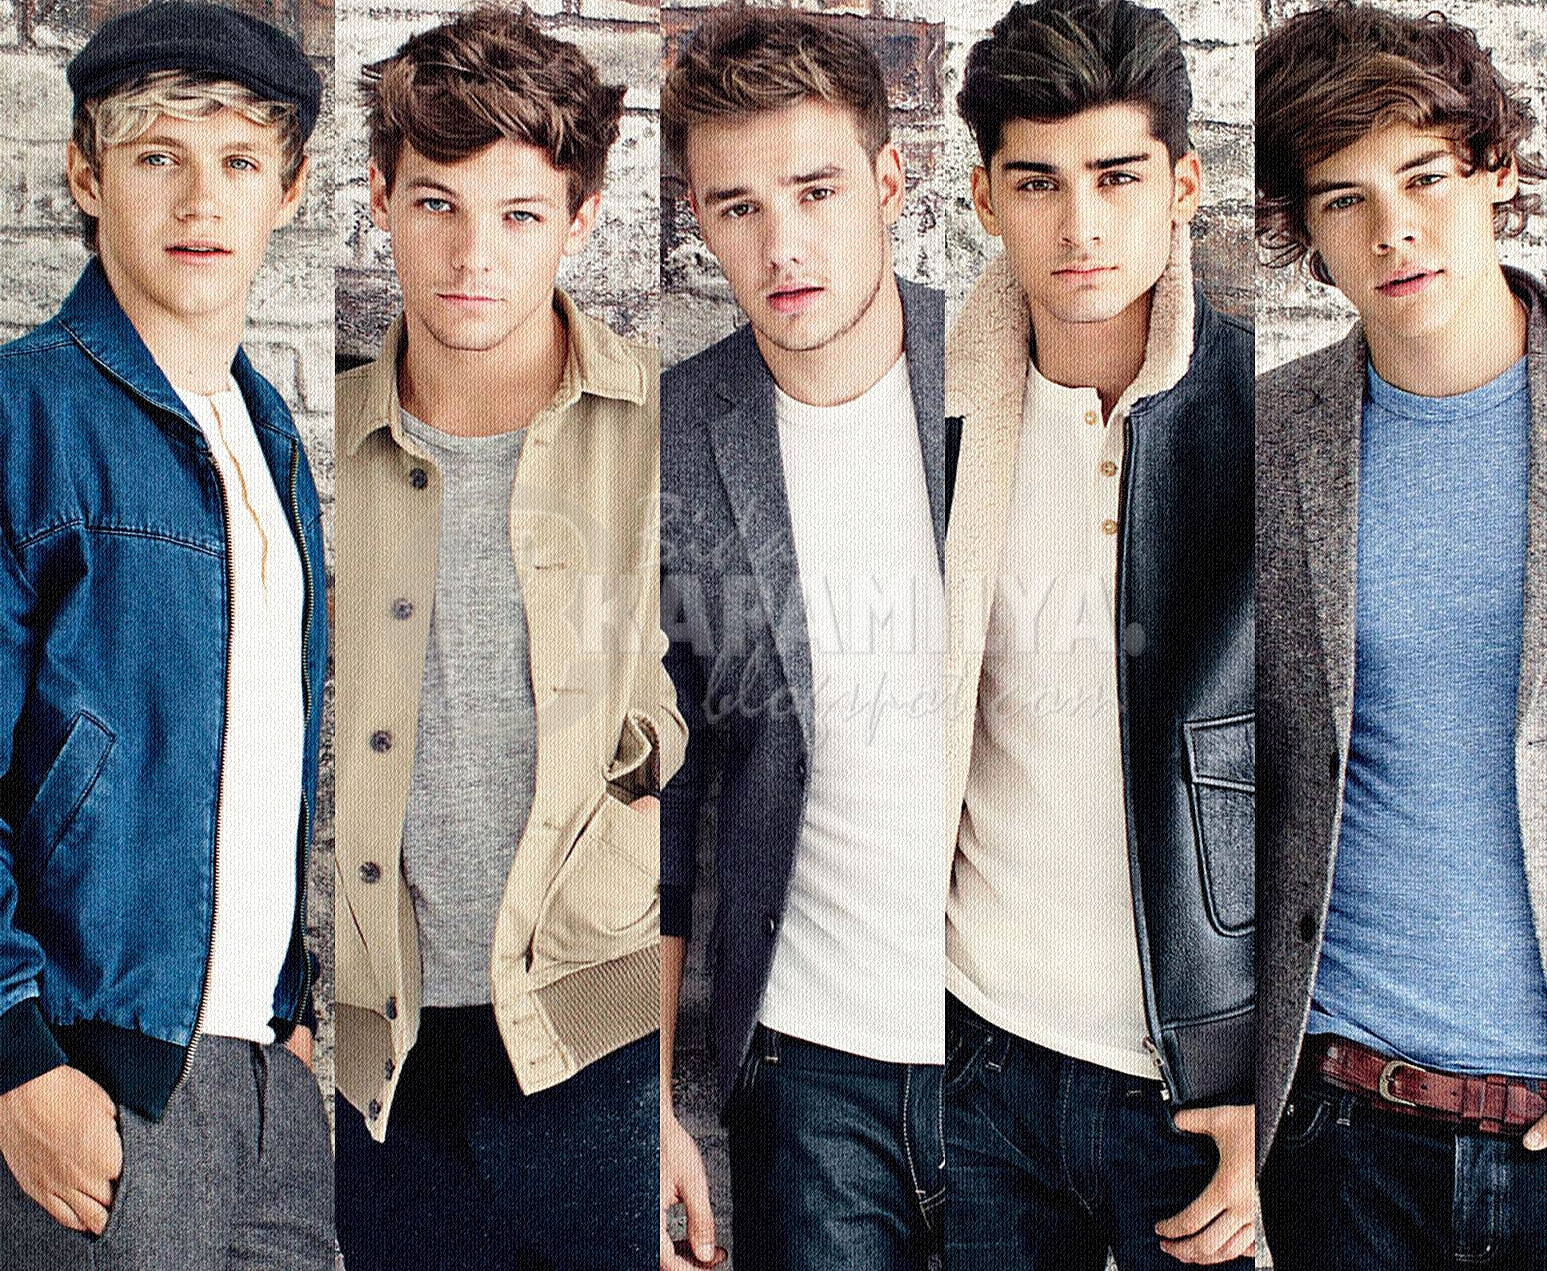 one direction one direction 33477423 1547 1271jpg 1547x1271